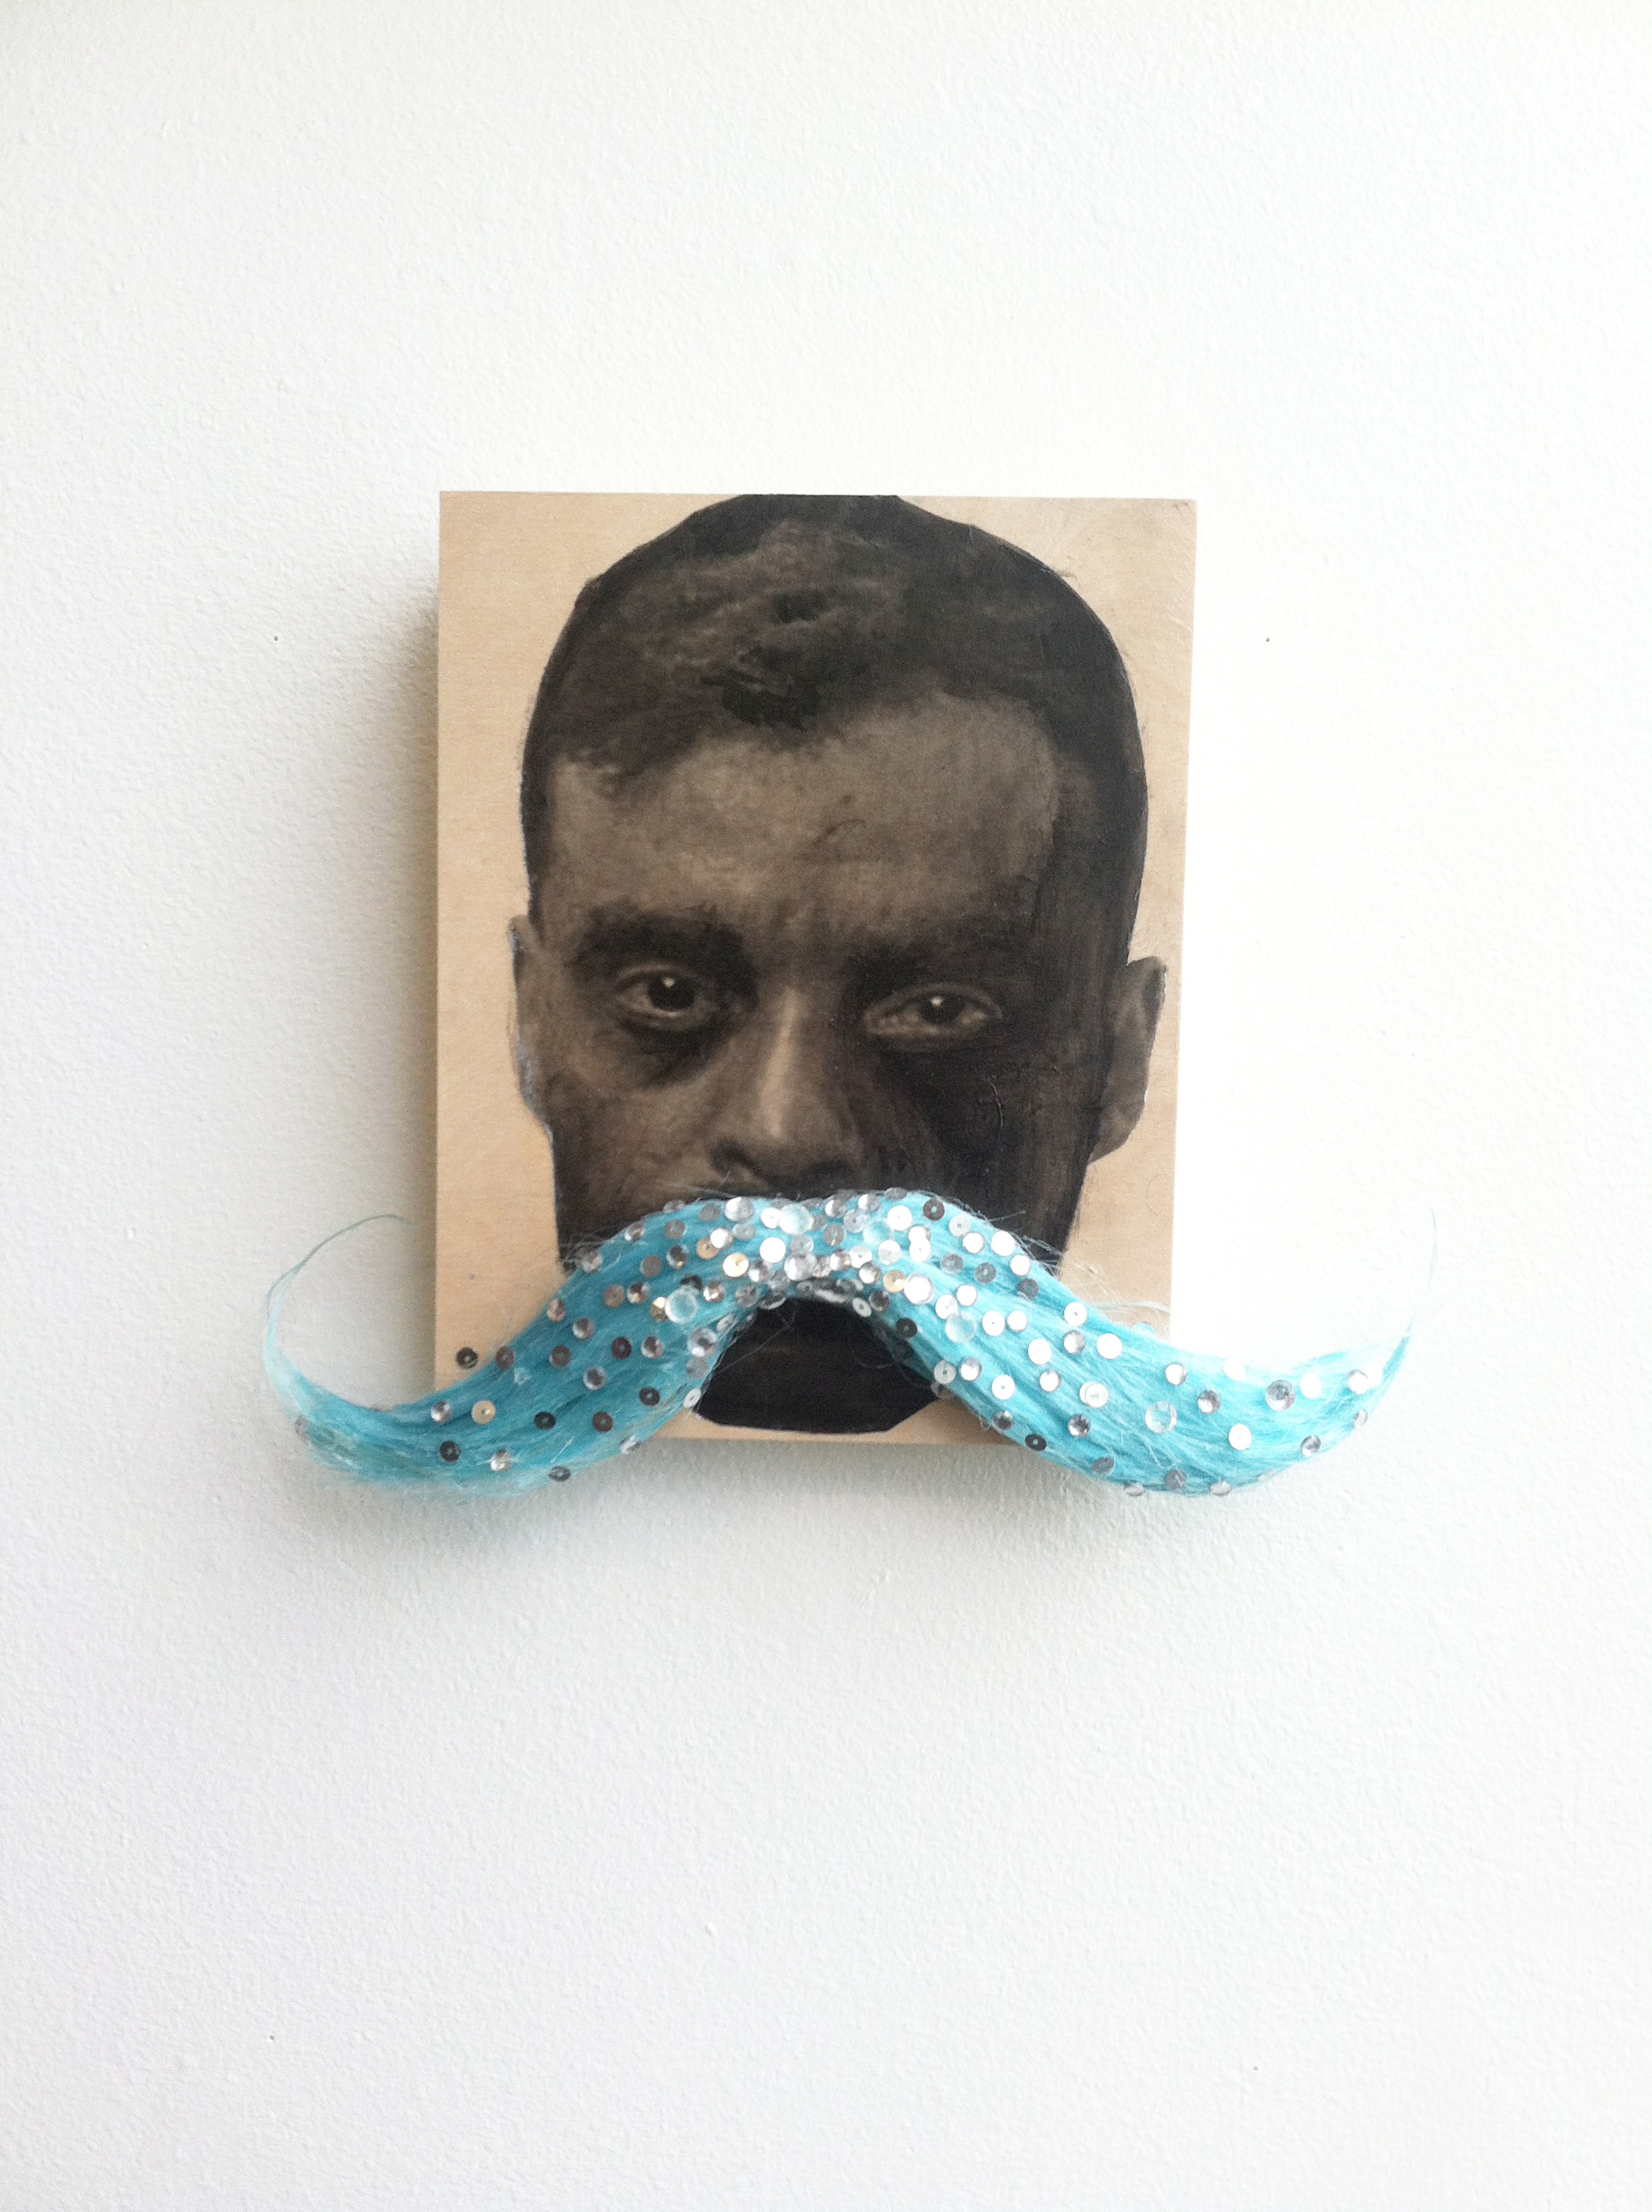 Alexander Hernandez, Zapata, 2015, Embellished mustache, gel medium transfer on wood panel, hernalex.com